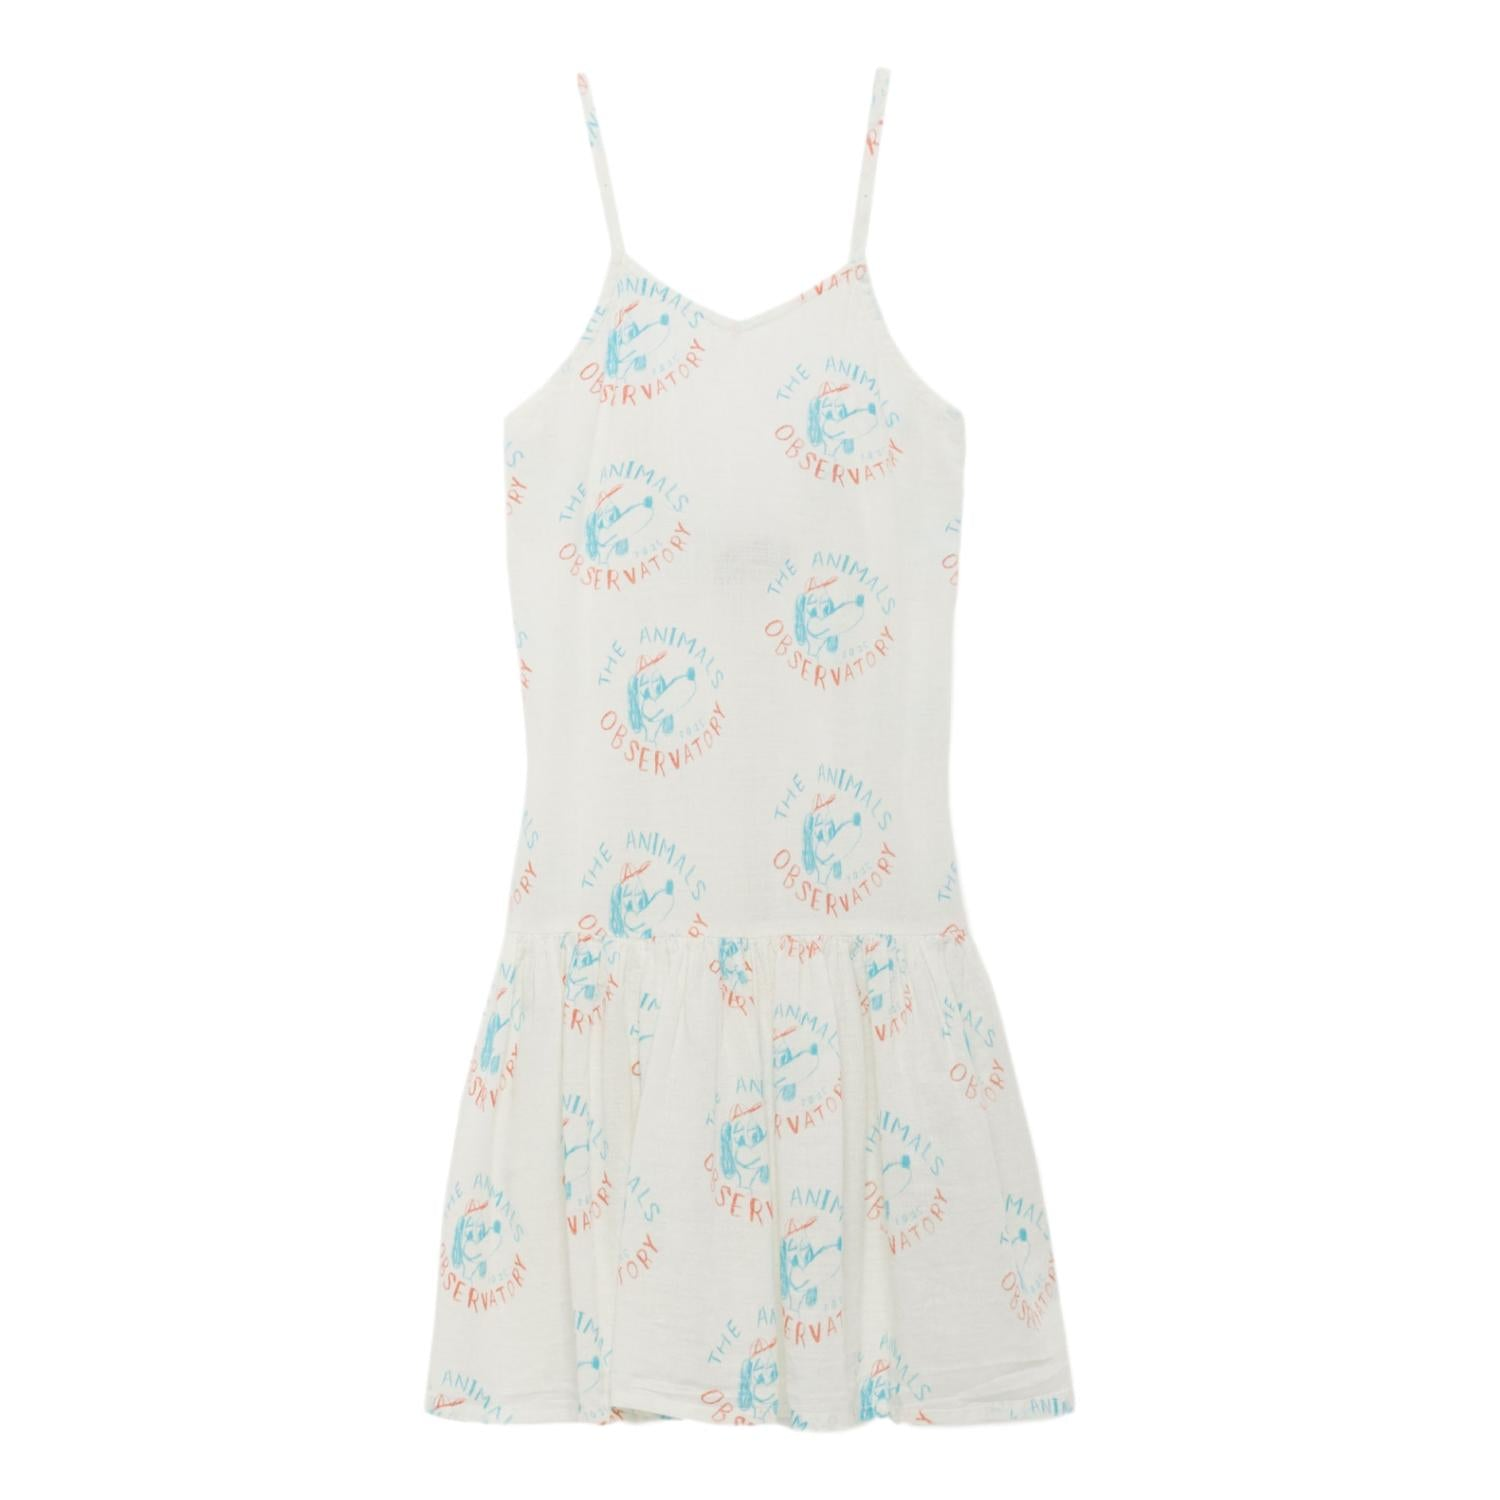 THE ANIMALS OBSERVATORY - Raw White Dogs Mouse Kids Dress